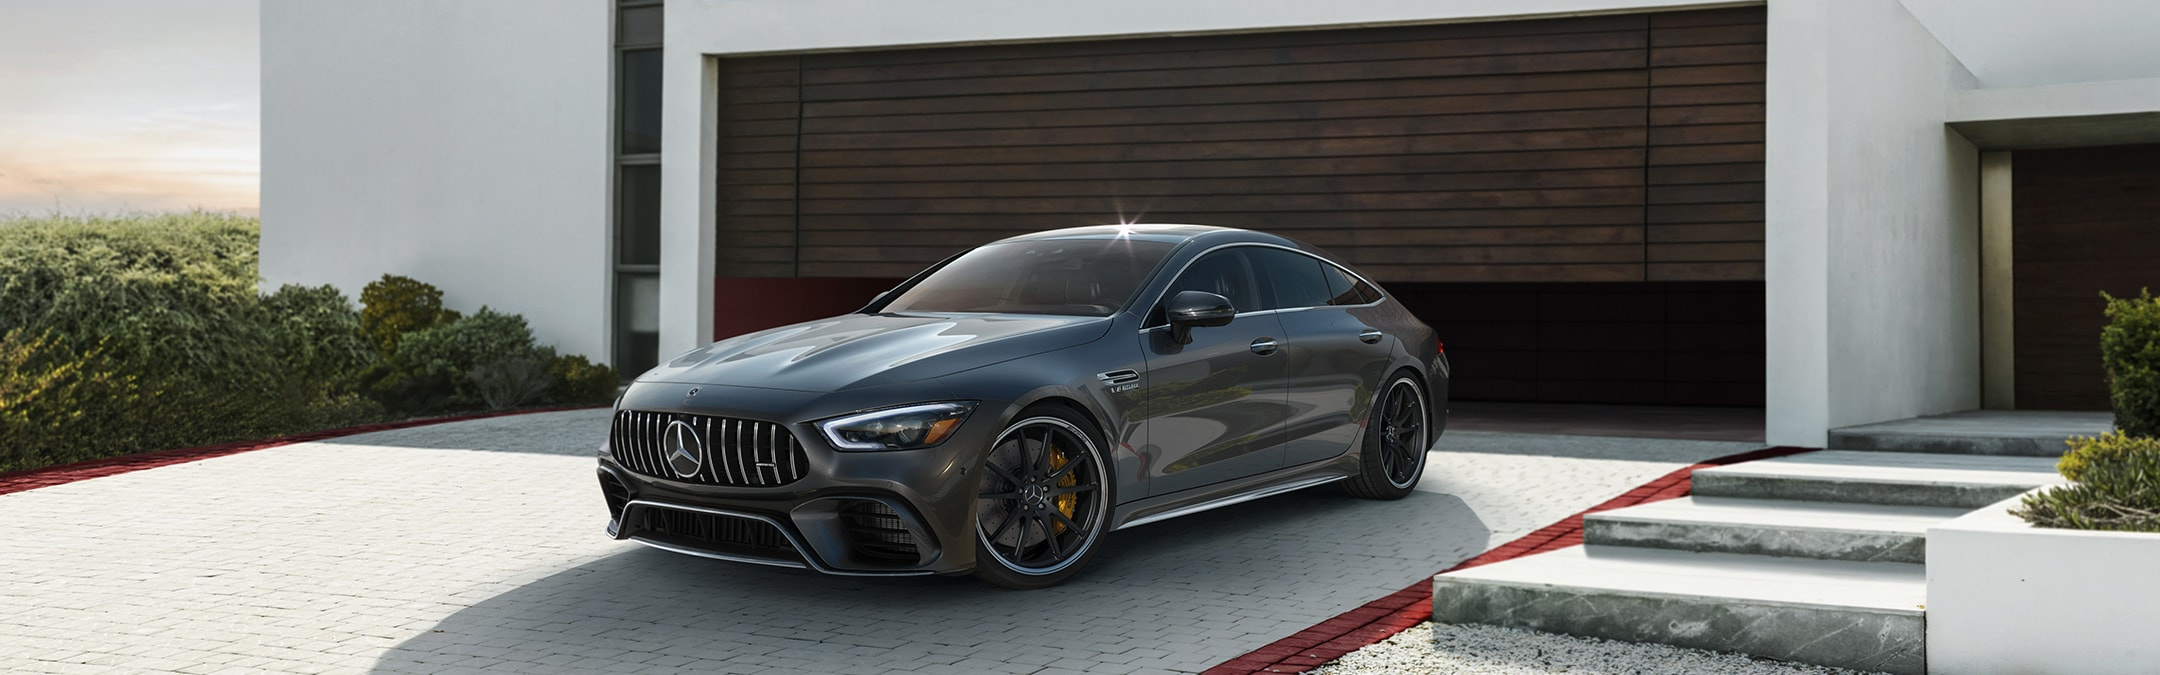 2021 AMG GT 4-DOOR COUPE